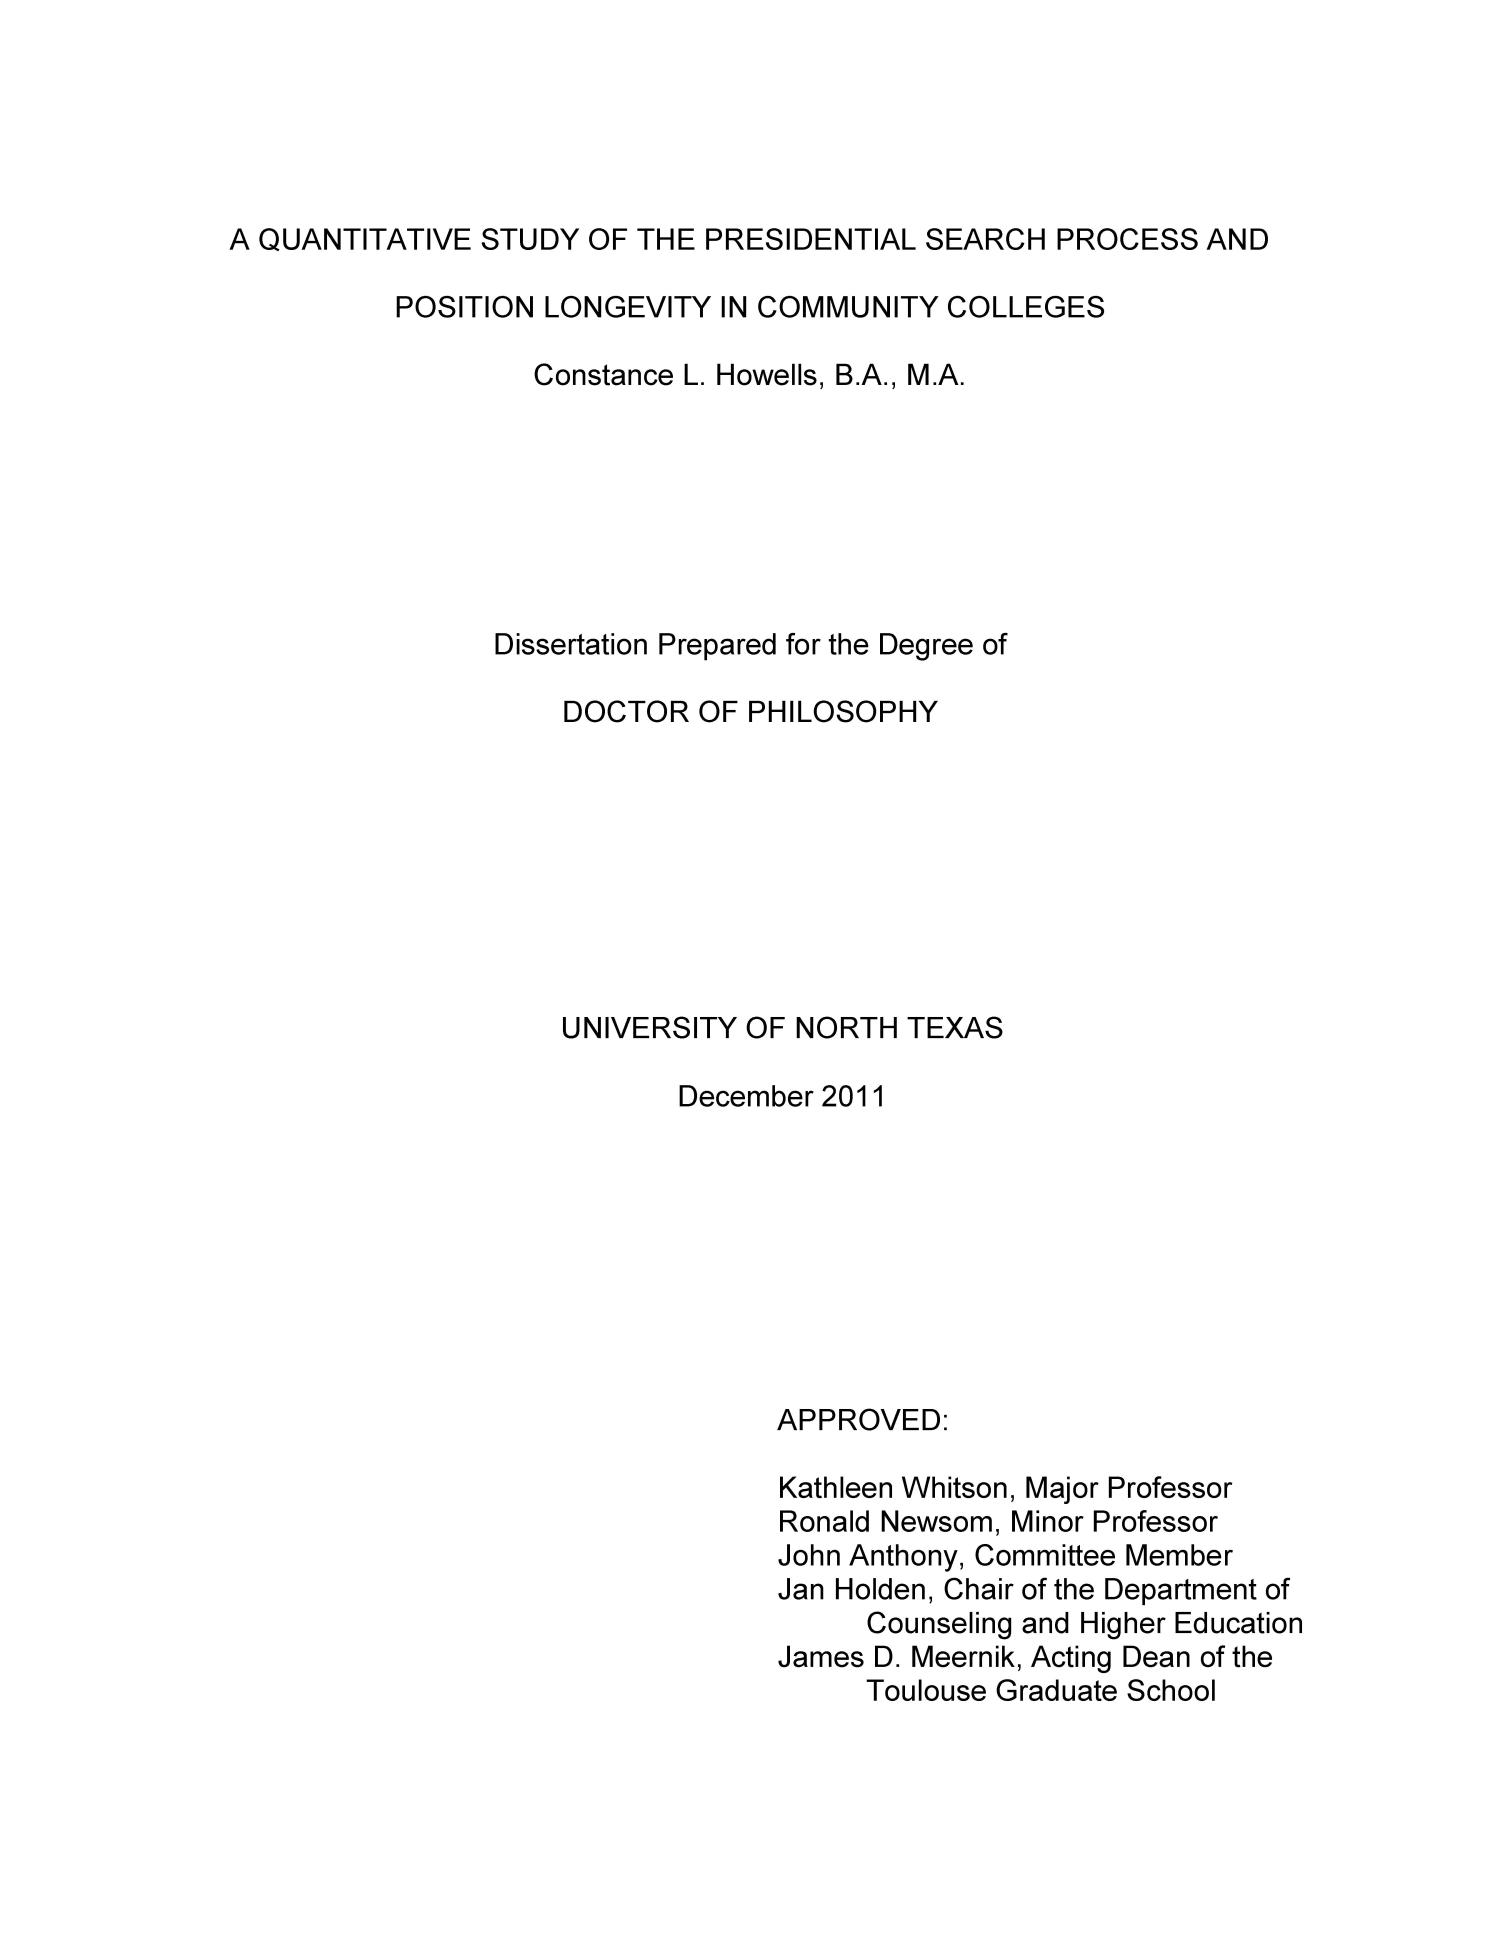 A Quantitative Study of the Presidential Search Process and Position Longevity in Community Colleges                                                                                                      Title Page